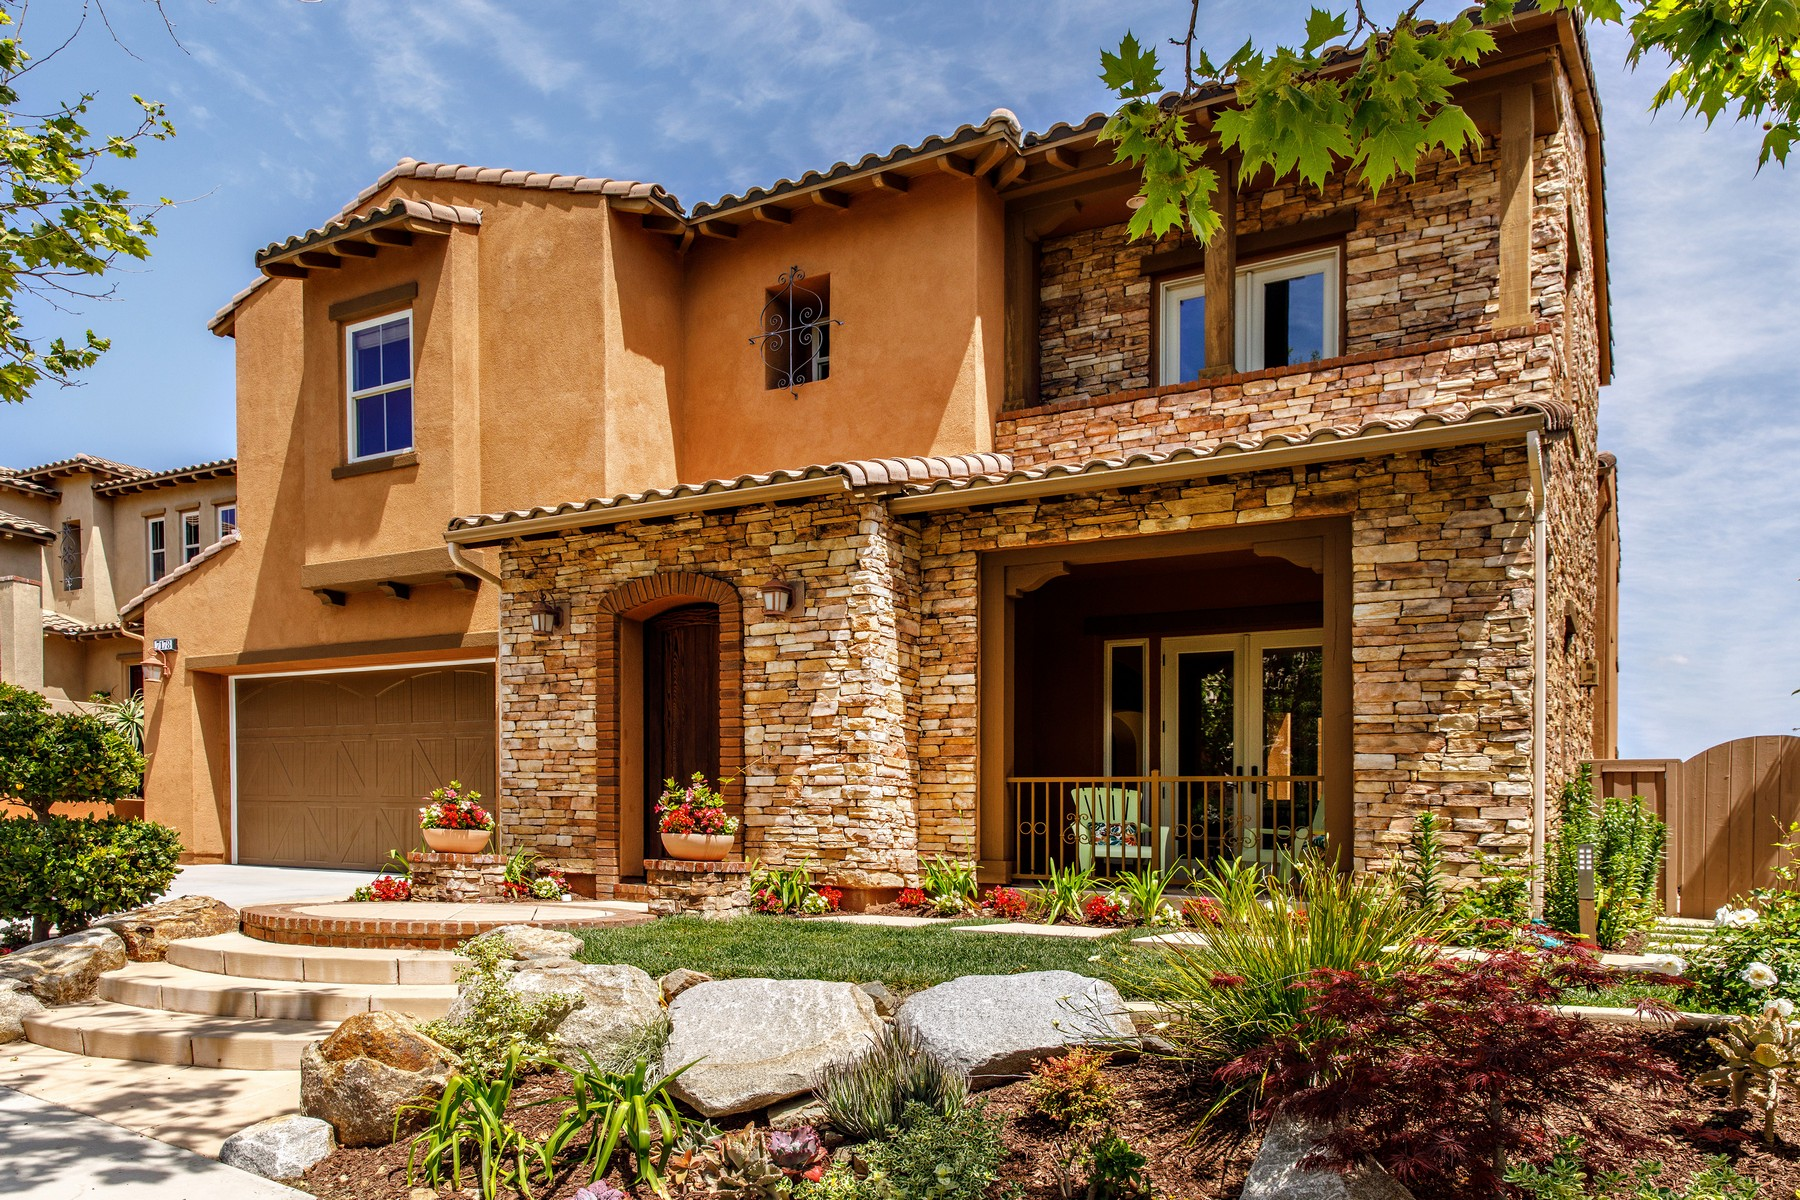 Single Family Home for Sale at 7178 Sitio Caballero Carlsbad, California 92009 United States